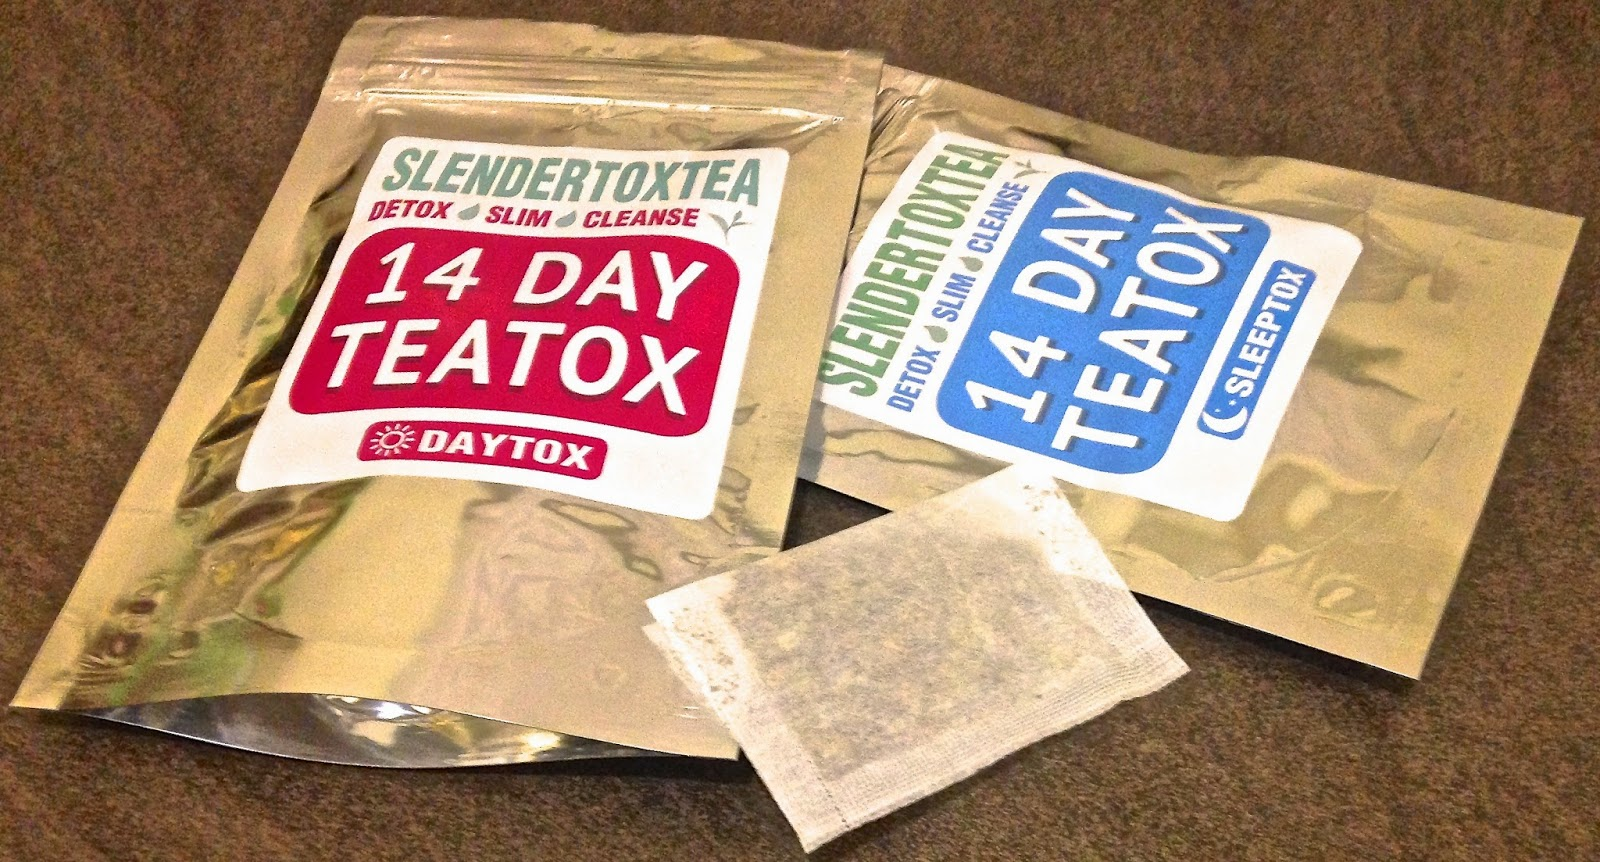 Slendertoxtea Review, 14 day teatox review, daytox, sleeptox